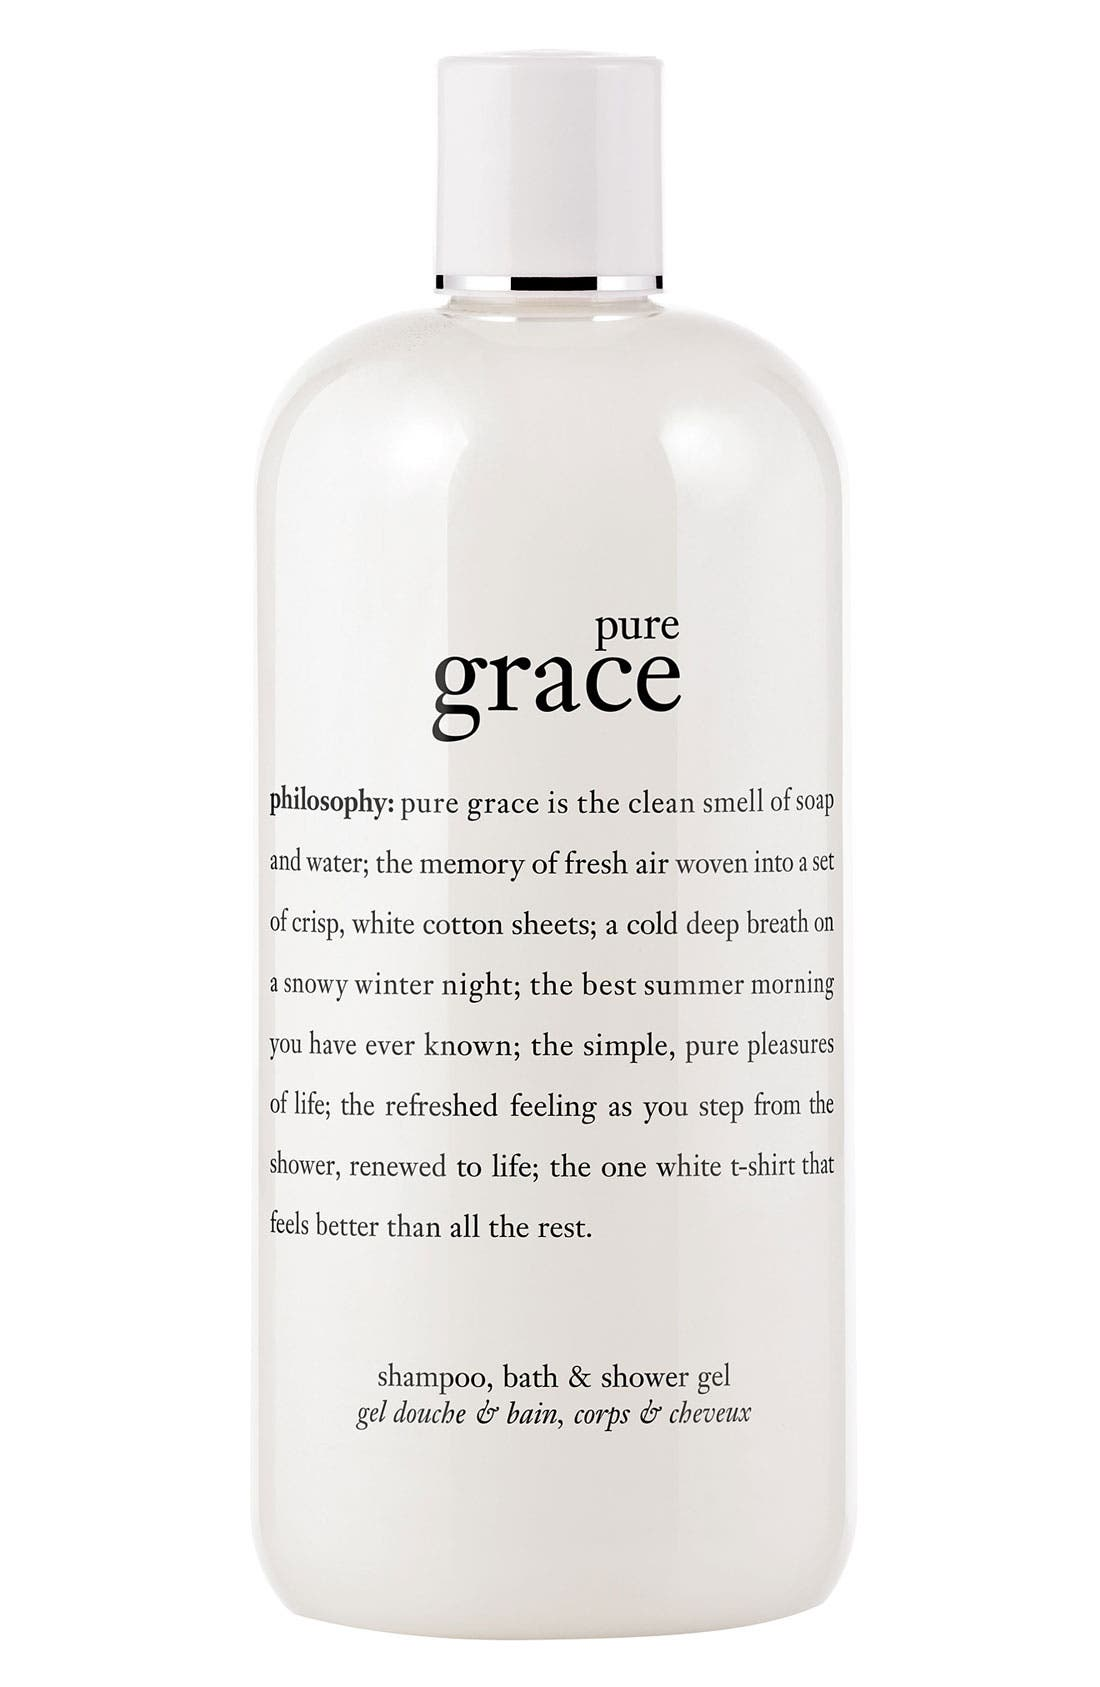 philosophy 'pure grace' shampoo, bath & shower gel